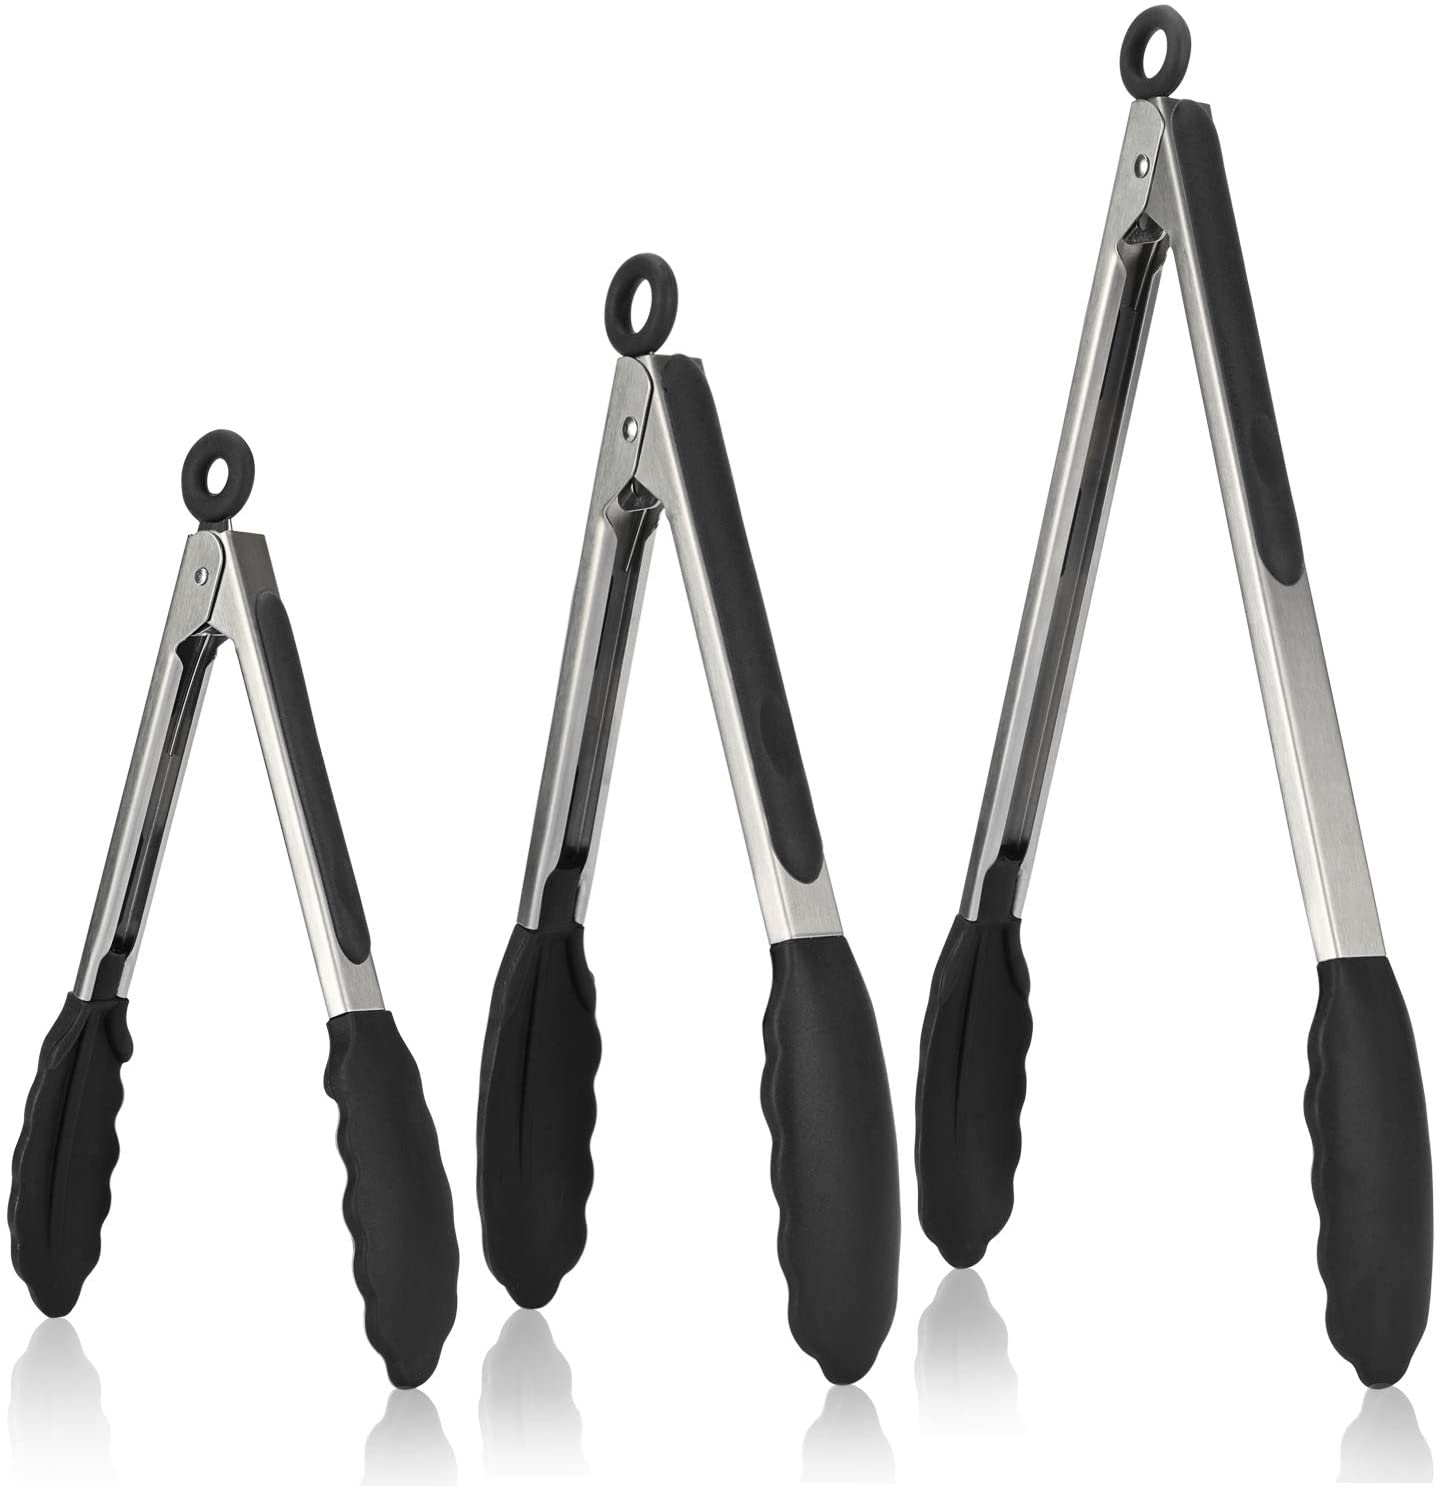 Kitchen Tongs, U-Taste 7/9/12 inches Cooking Tongs, with 480ºF High Heat-Resistant Non-Stick Silicone Tips&18/8 Stainless Steel Handle, for Food Grill, Salad, BBQ, Frying, Serving, Pack of 3 (Black)